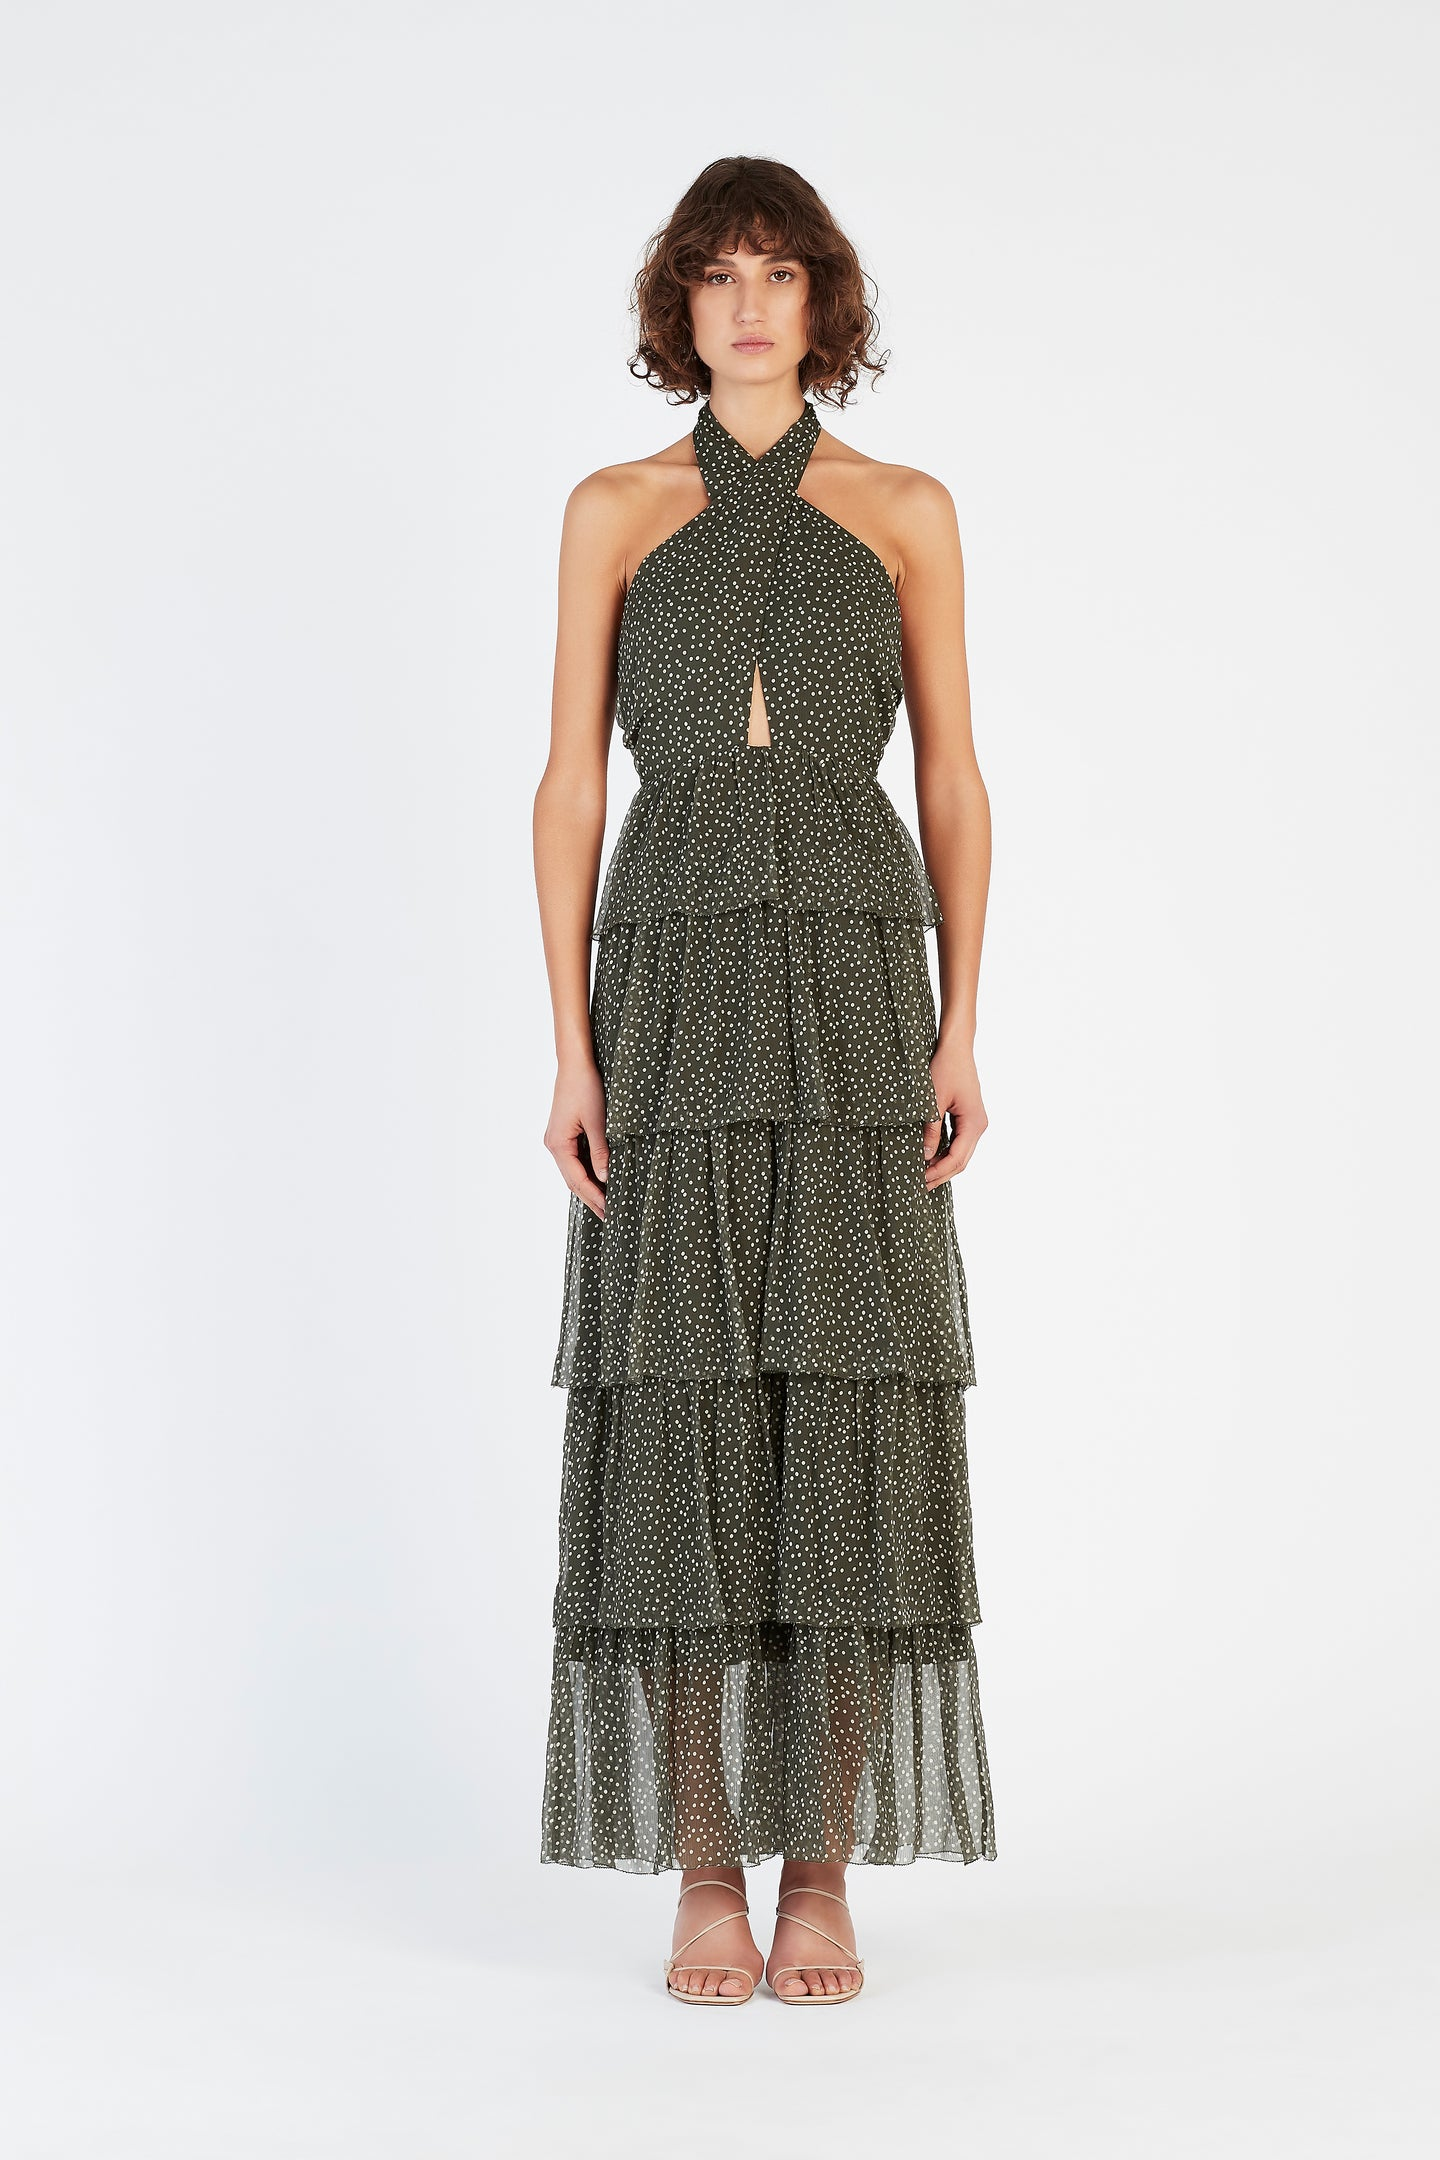 SIR the label ISABELLA HALTER GOWN OLIVE POLKA DOT